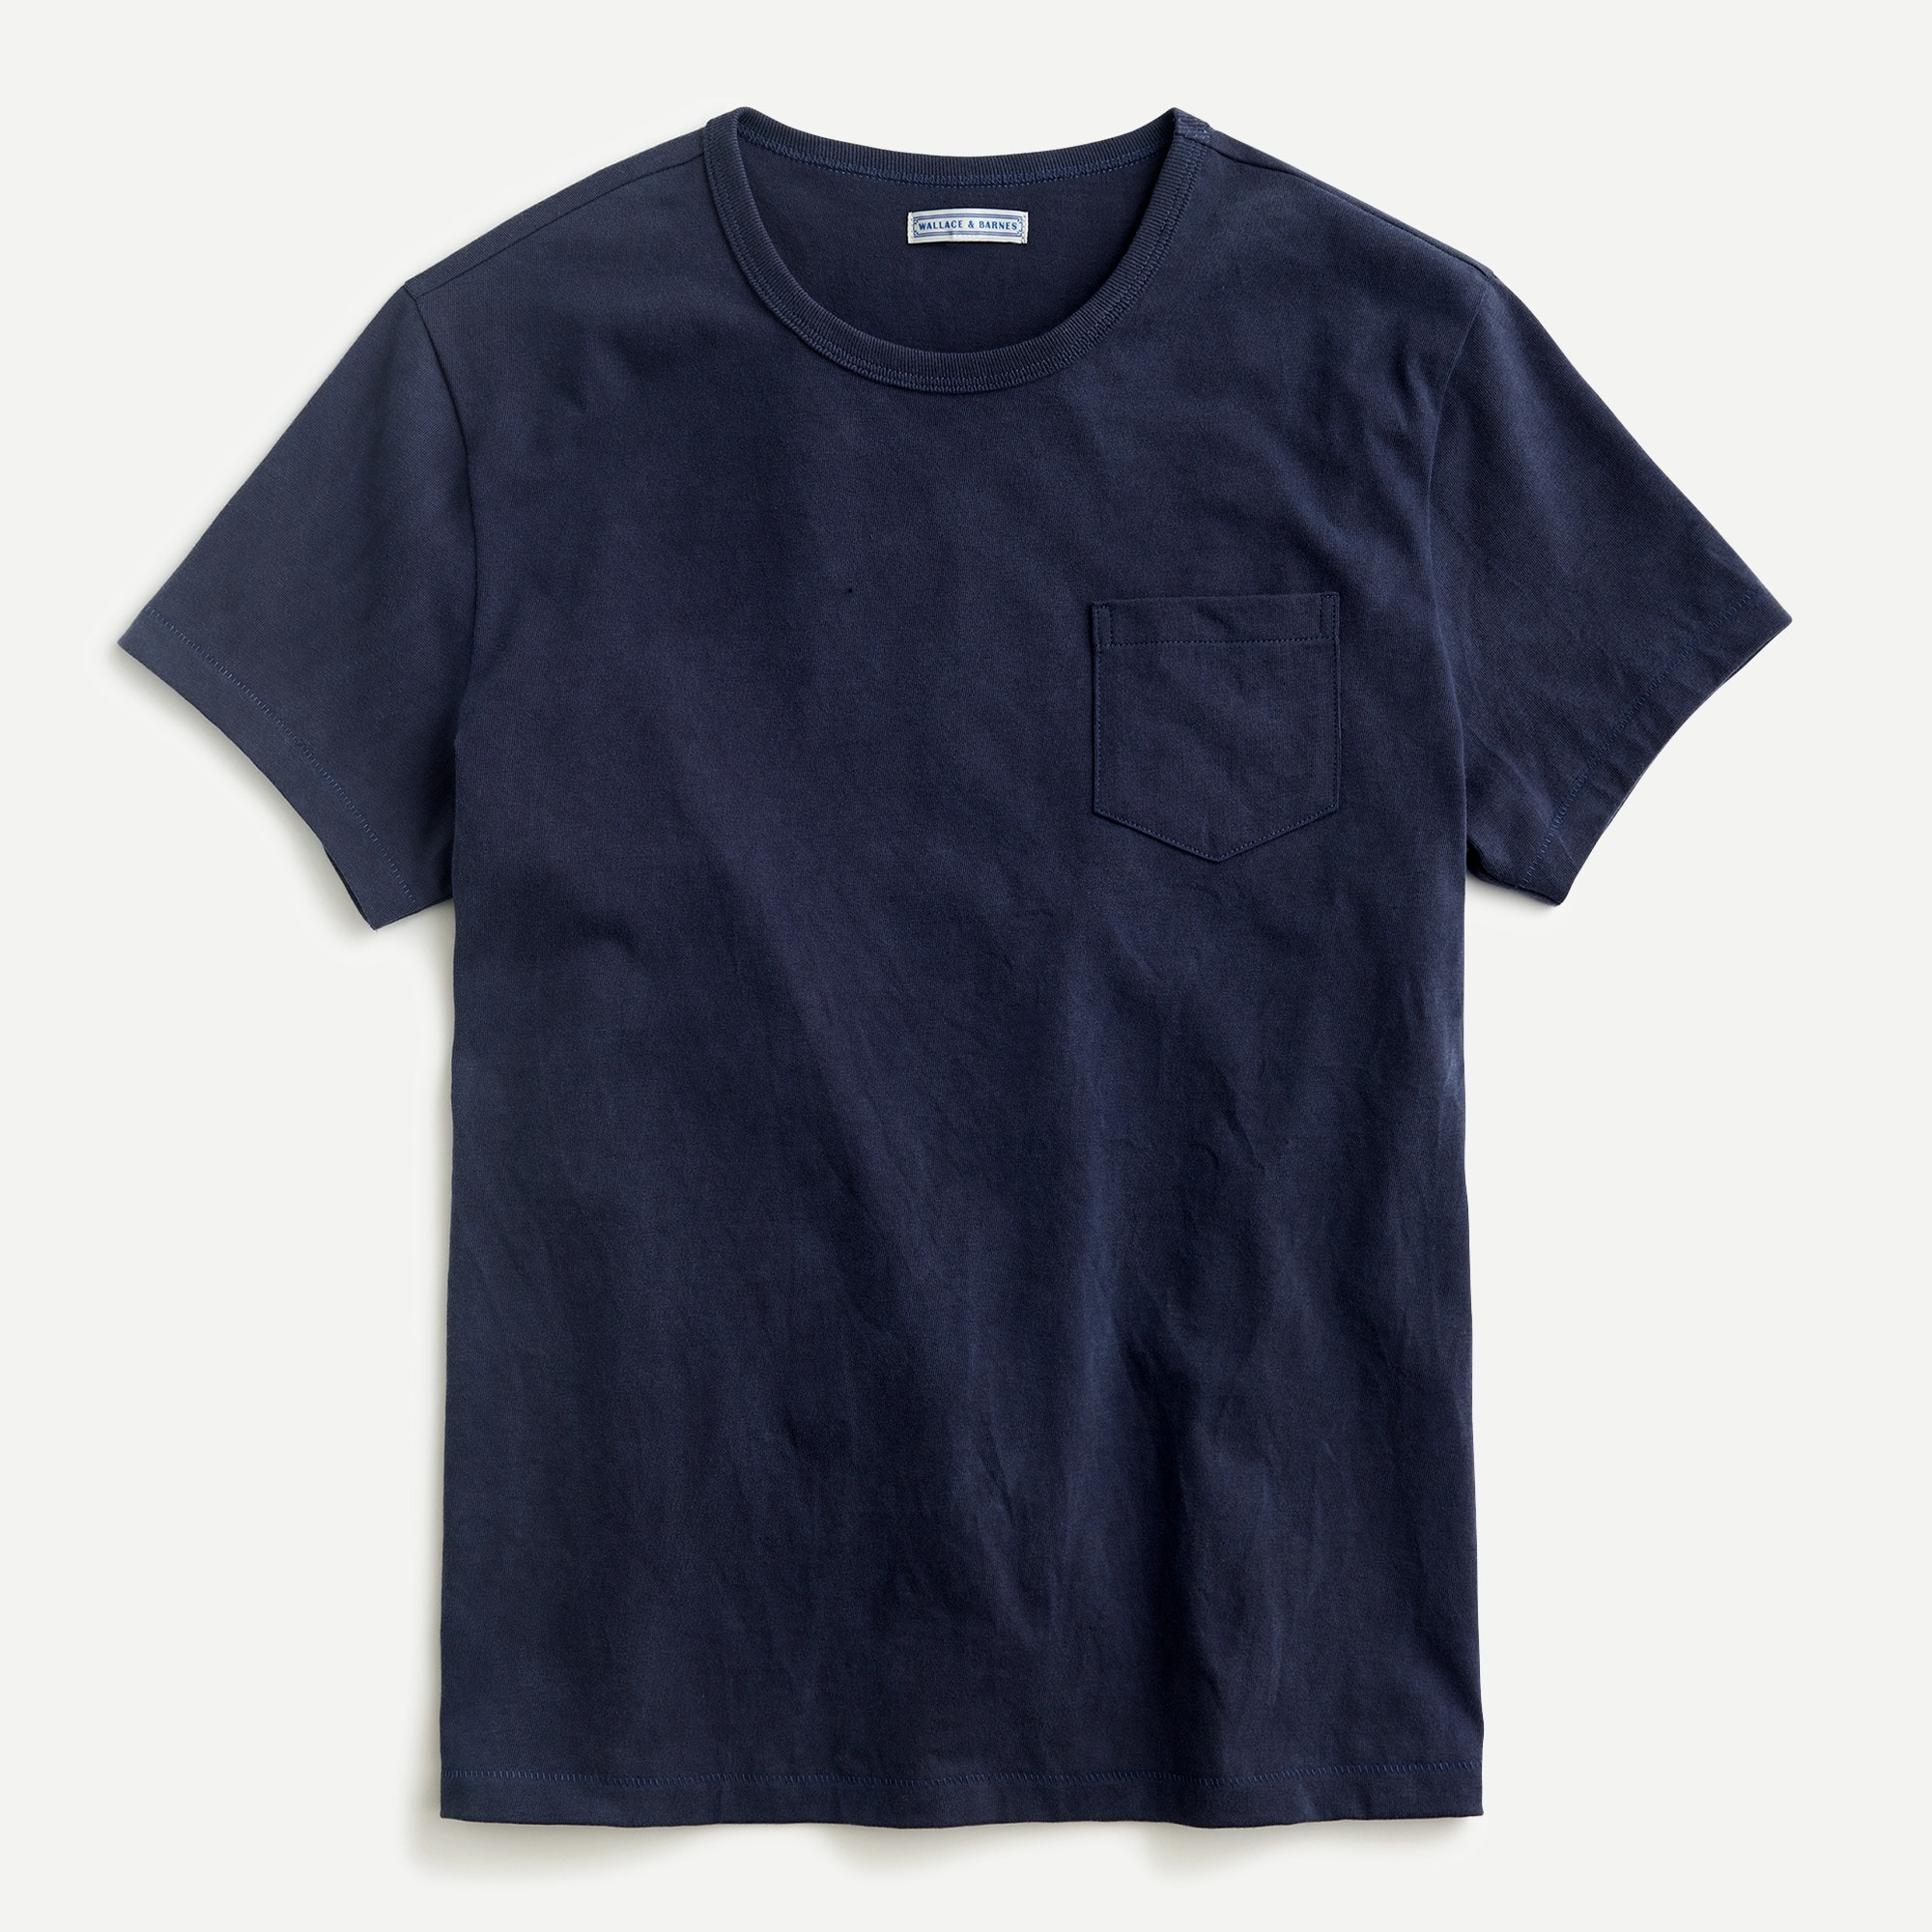 Image 3 for Wallace & Barnes tubular T-shirt